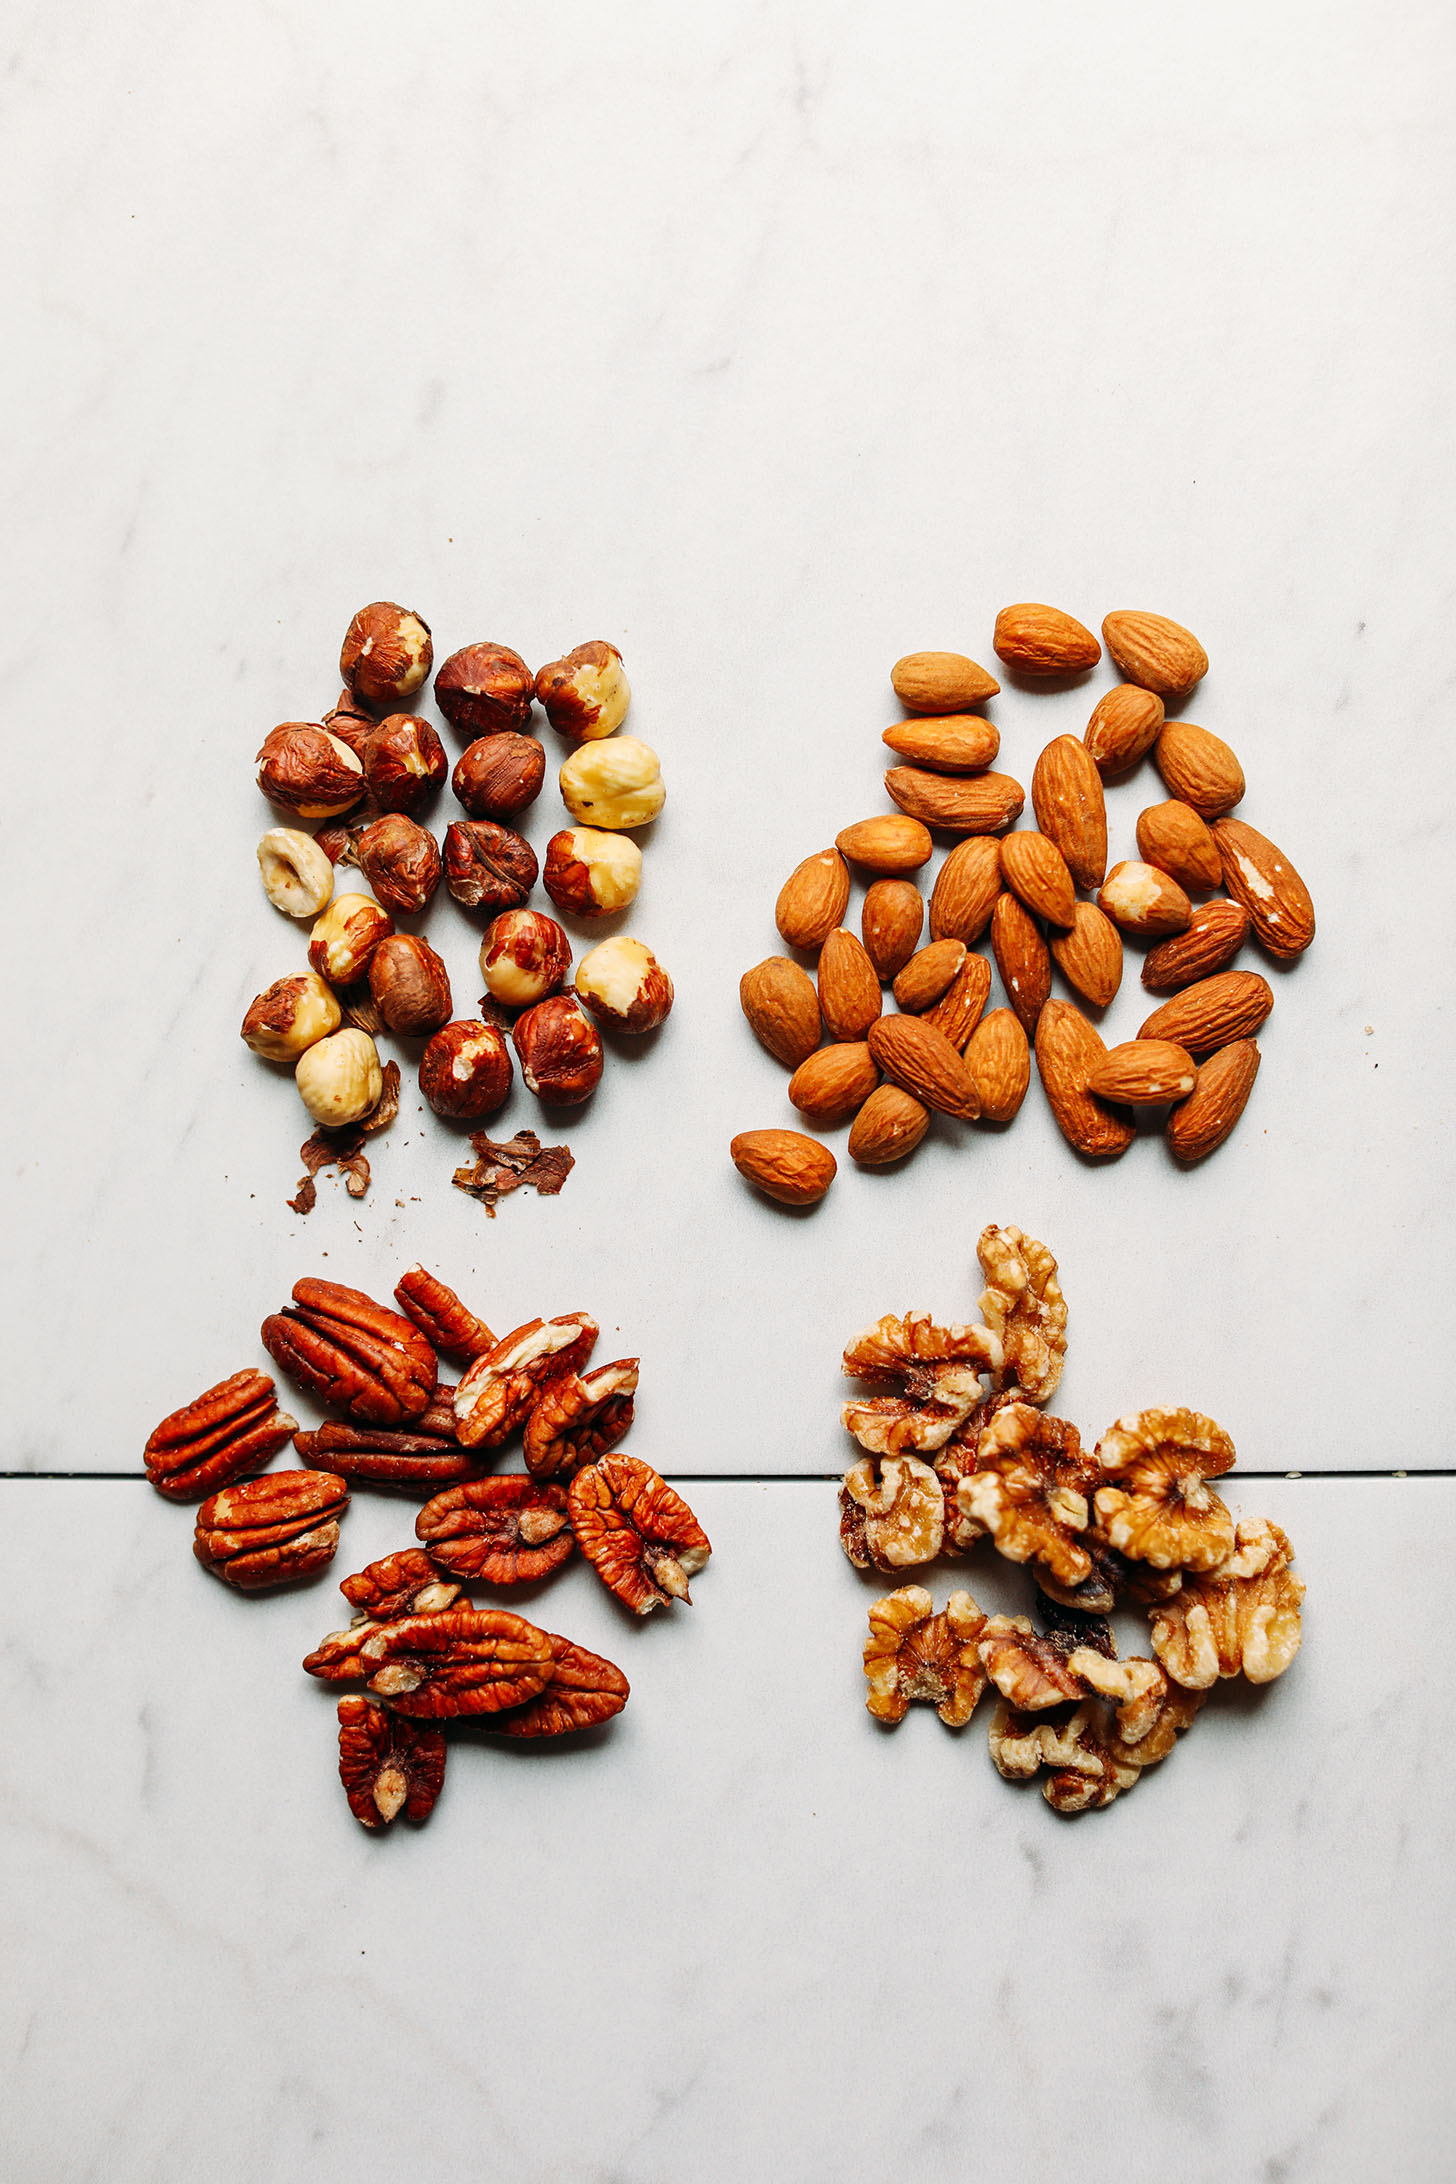 Mixed nut butter recipe for Food52 bar nuts